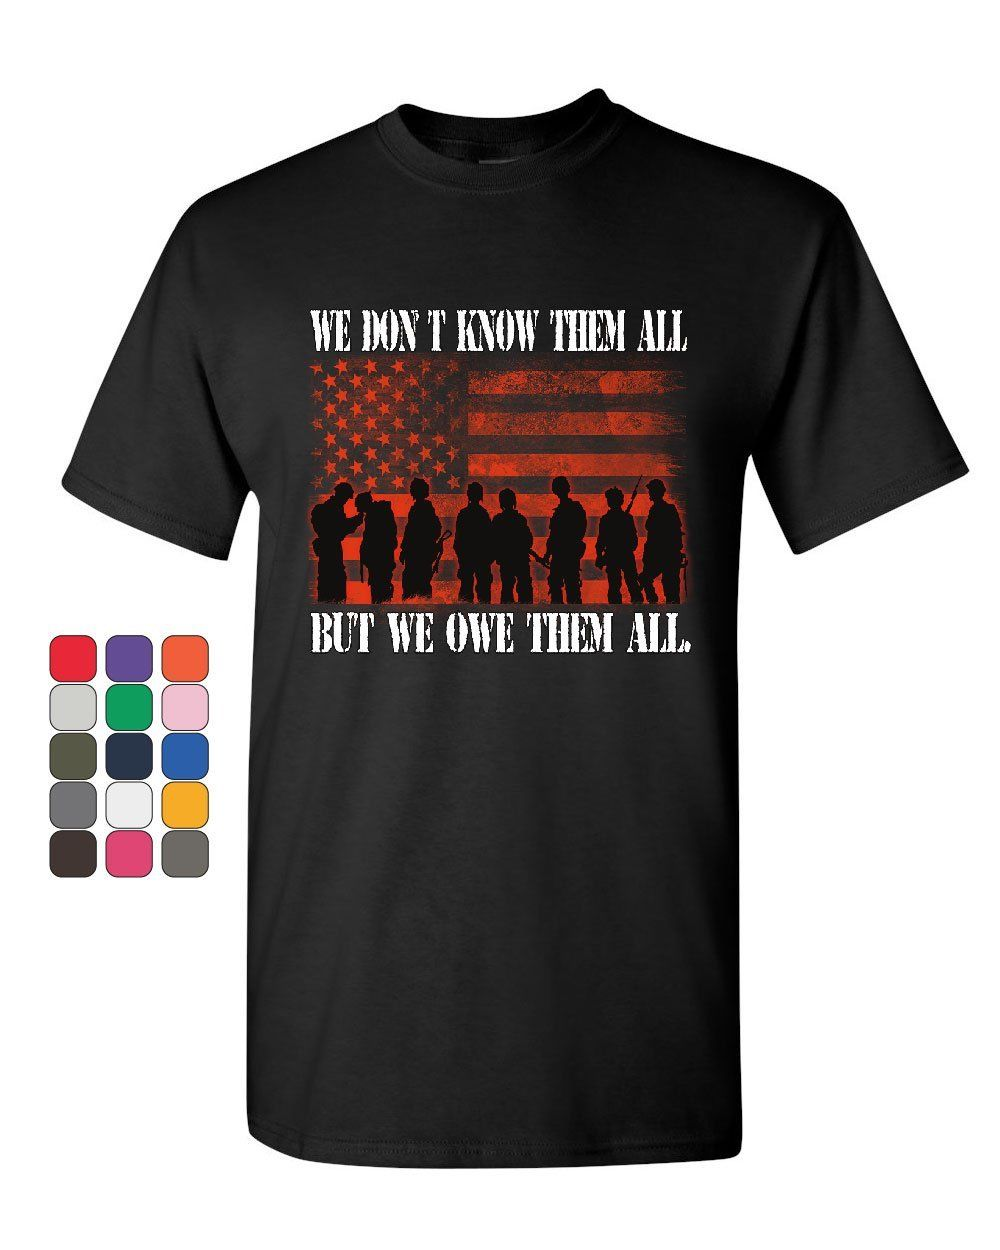 We Owe Them All T Shirt Military Veteran Support Our Troops Army Mens Tee Shirt Fashion Style Men Tee,Hip Hop Tee Shirt